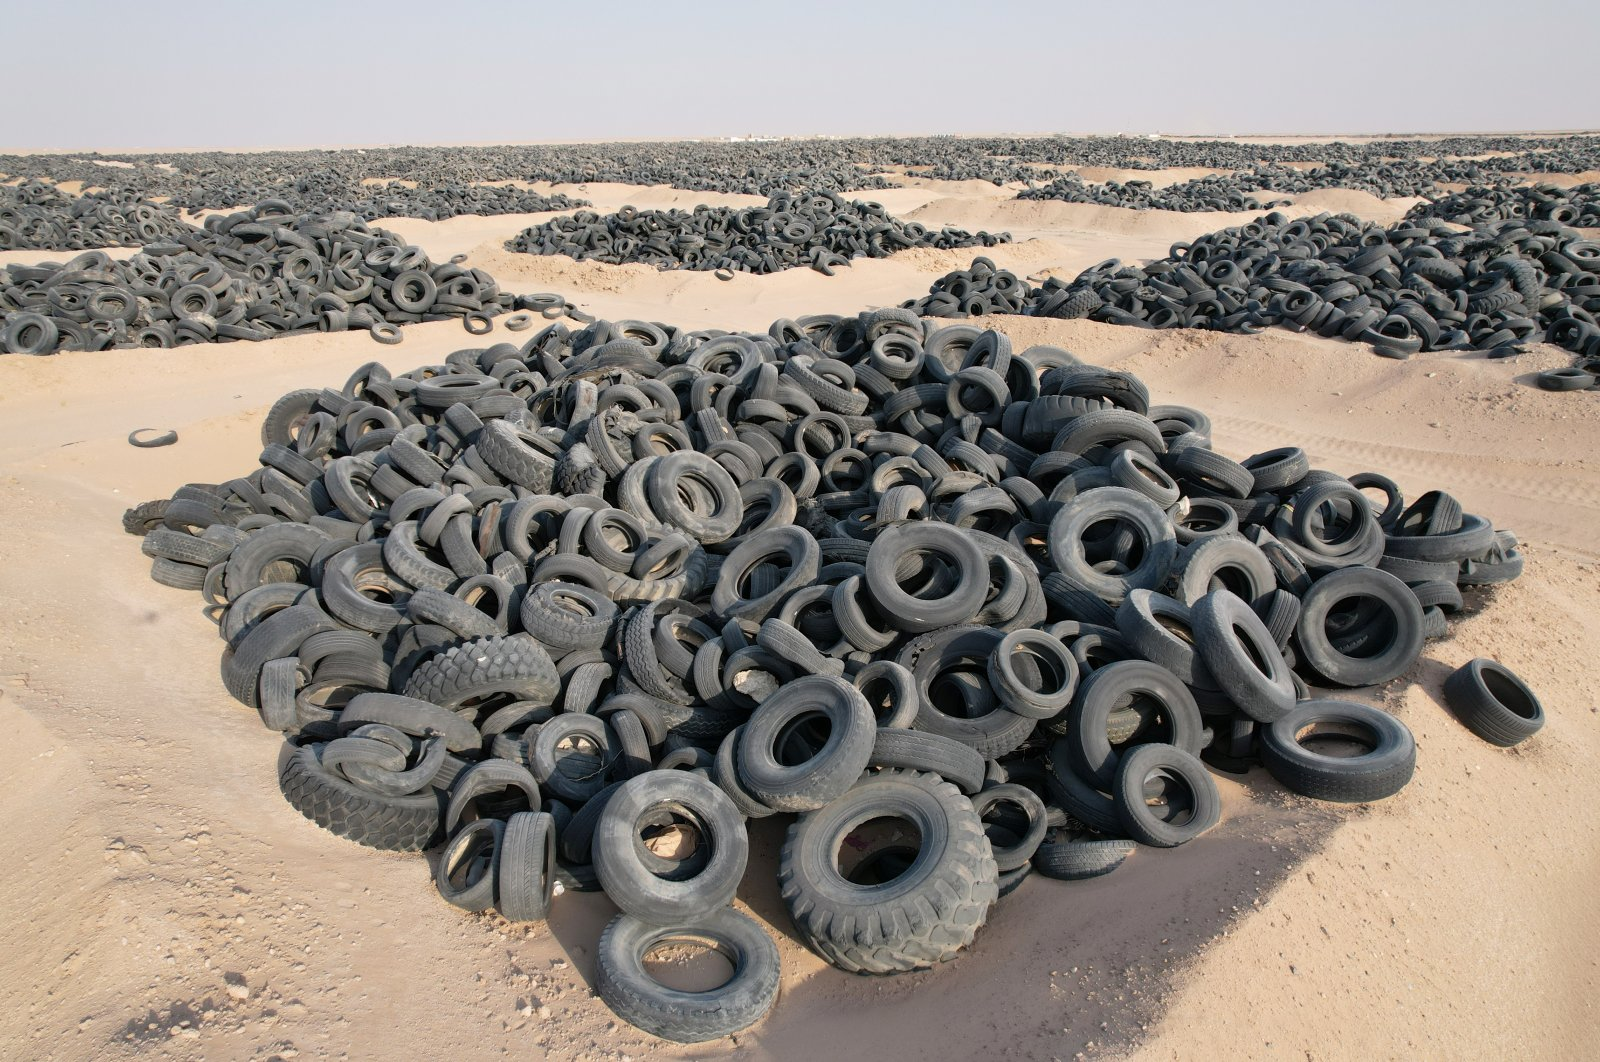 A tire graveyard with 50 million dumped tires poses environmental and health risks. (AA Photo)